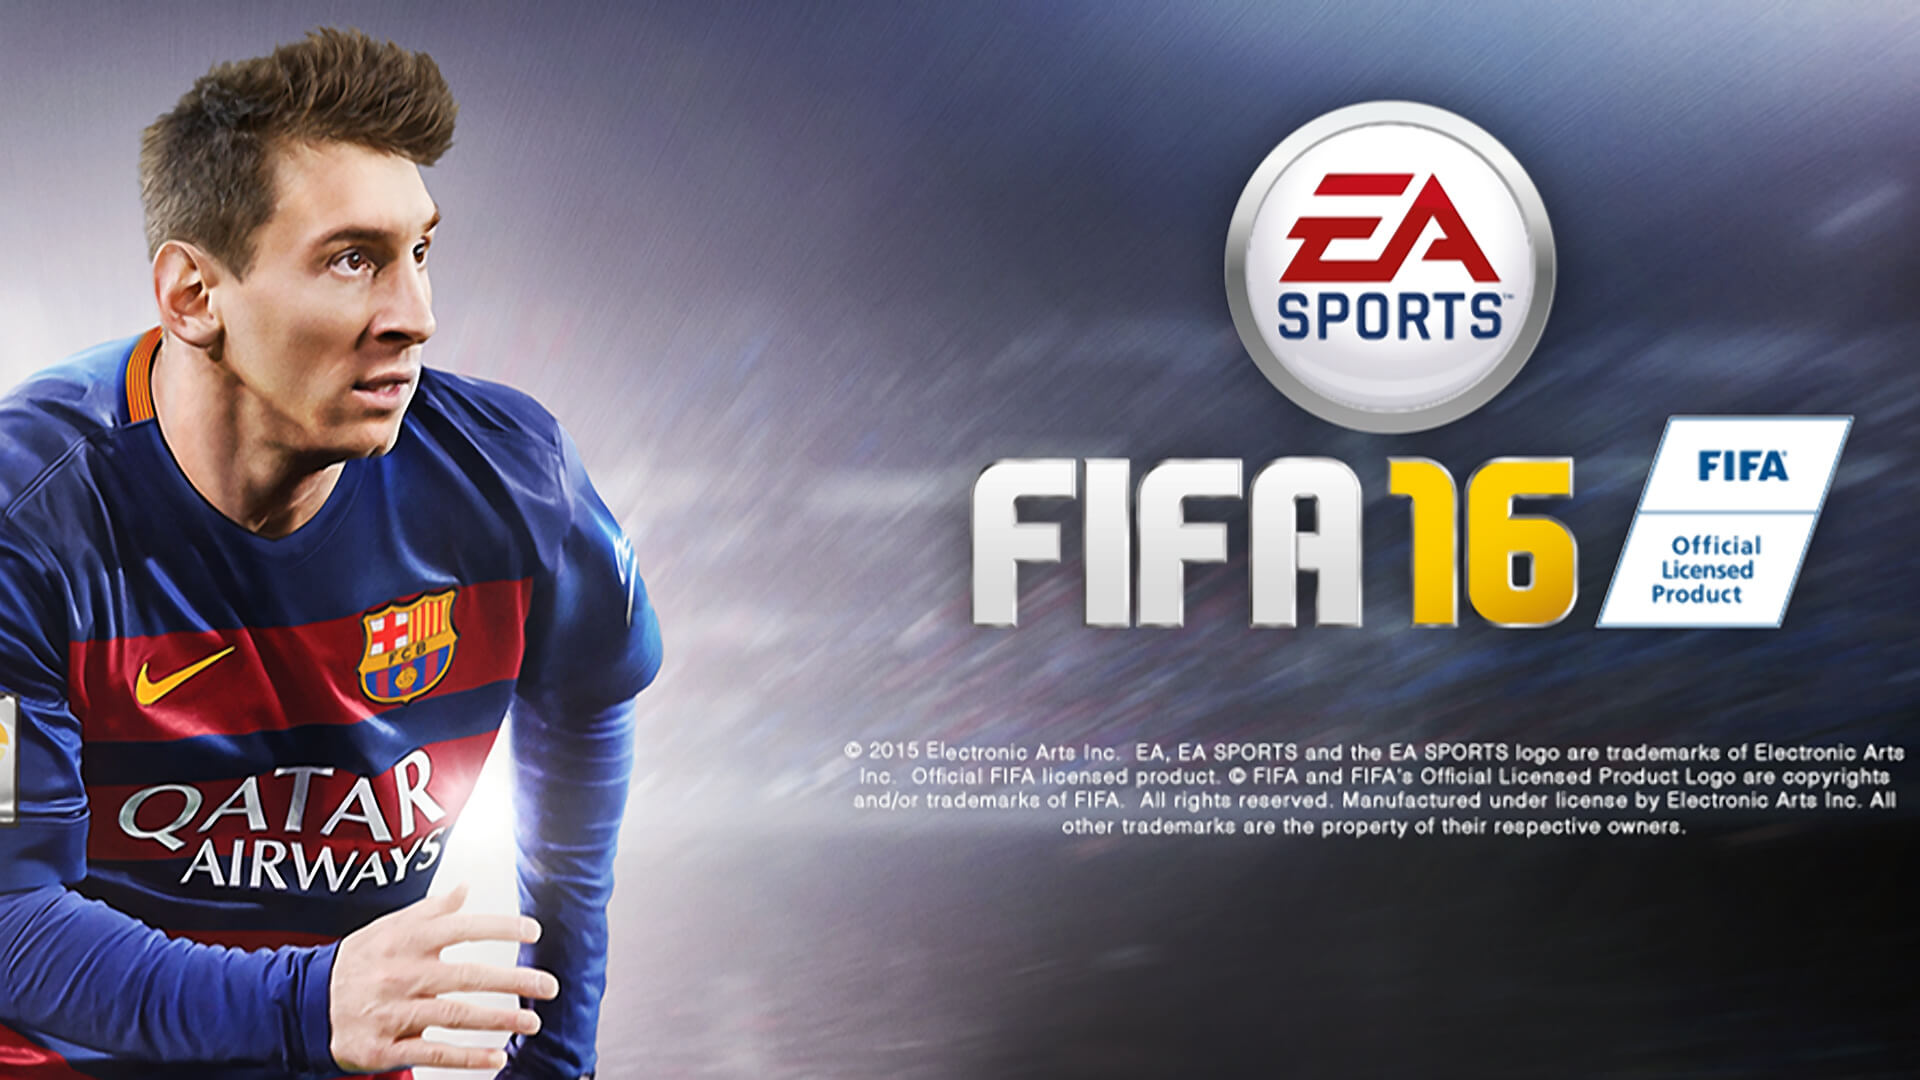 FIFA 16 Leo Messi 2016 Official Cover Poster Wallpaper 1920x1080